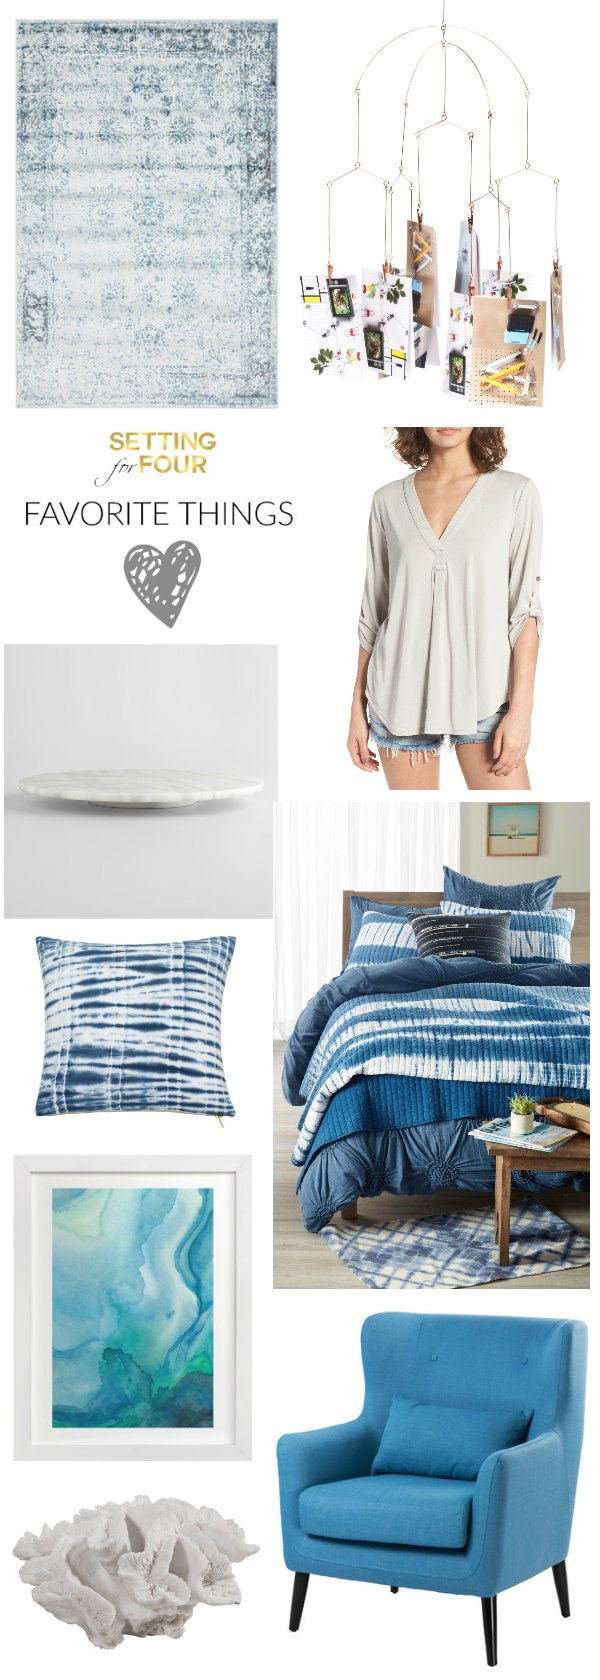 See My Latest Favorite Things And Style Ideas To Freshen Up Your Home Decor And Closet